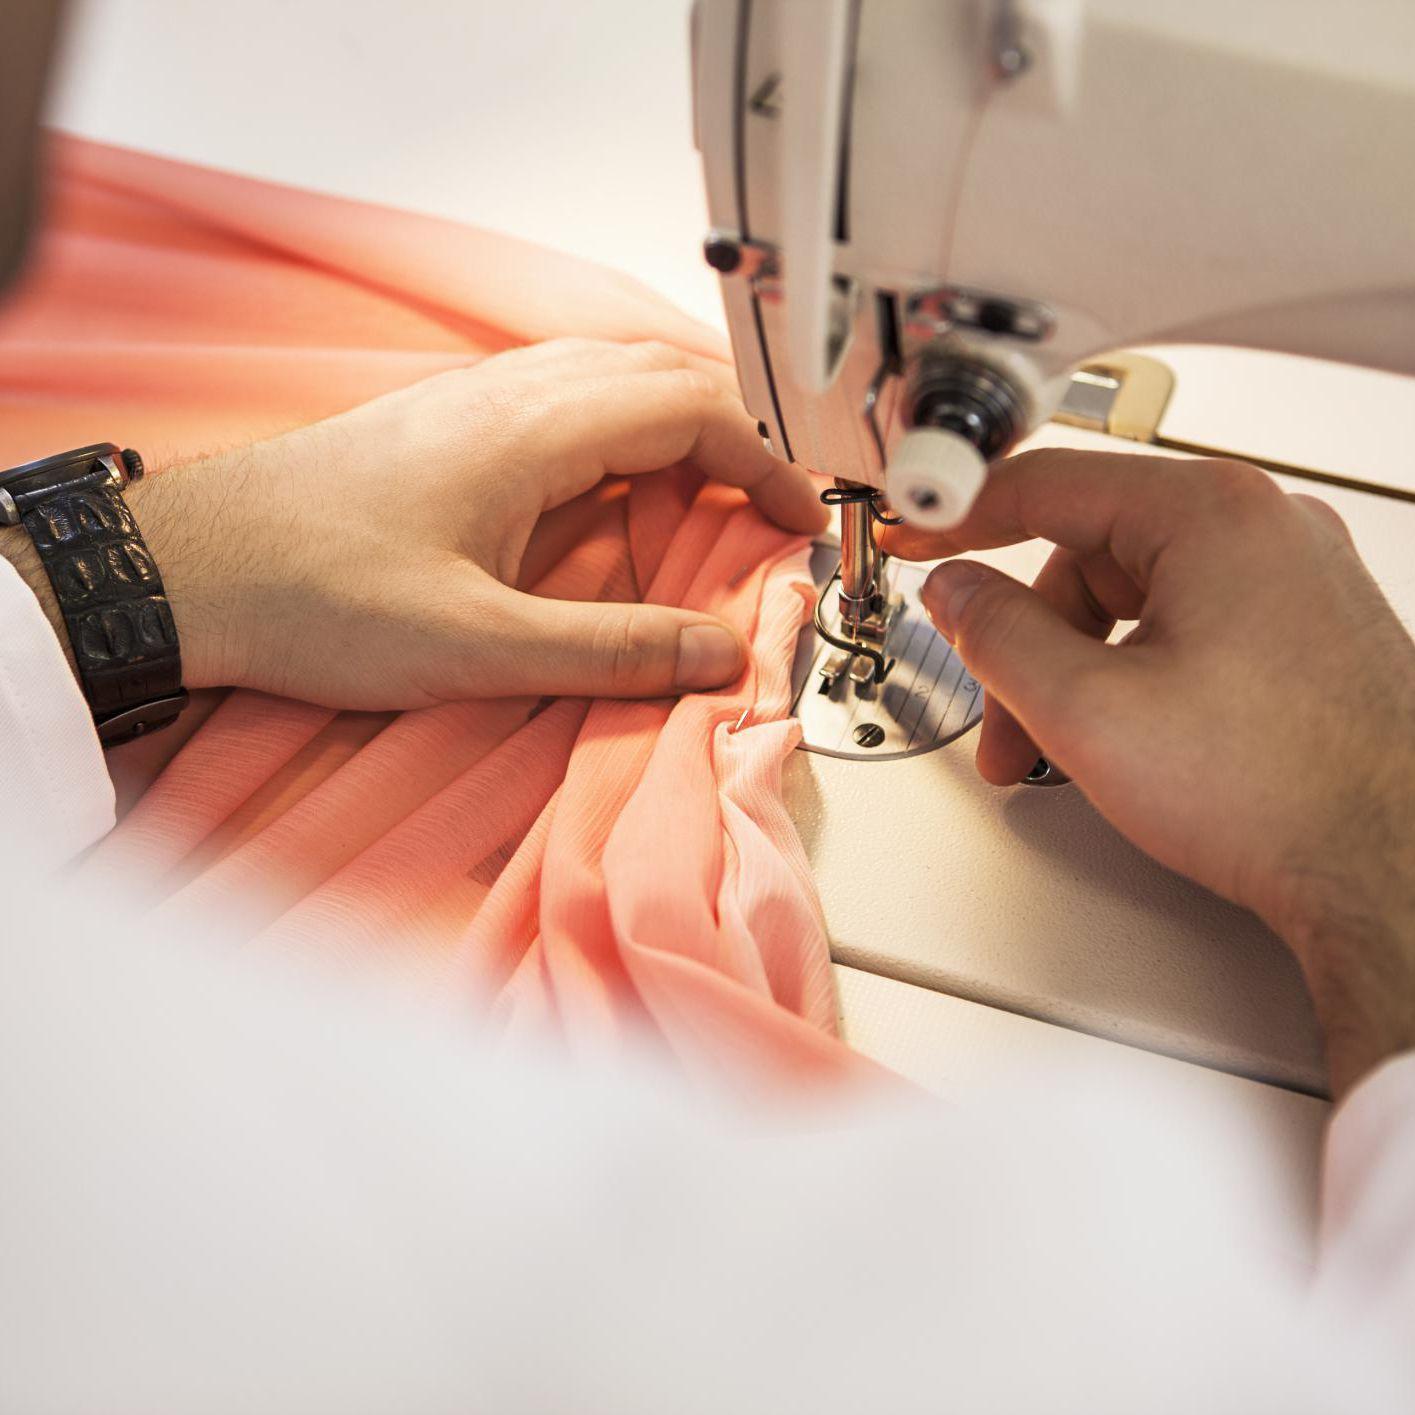 Troubleshooting Common Sewing Machine Problems